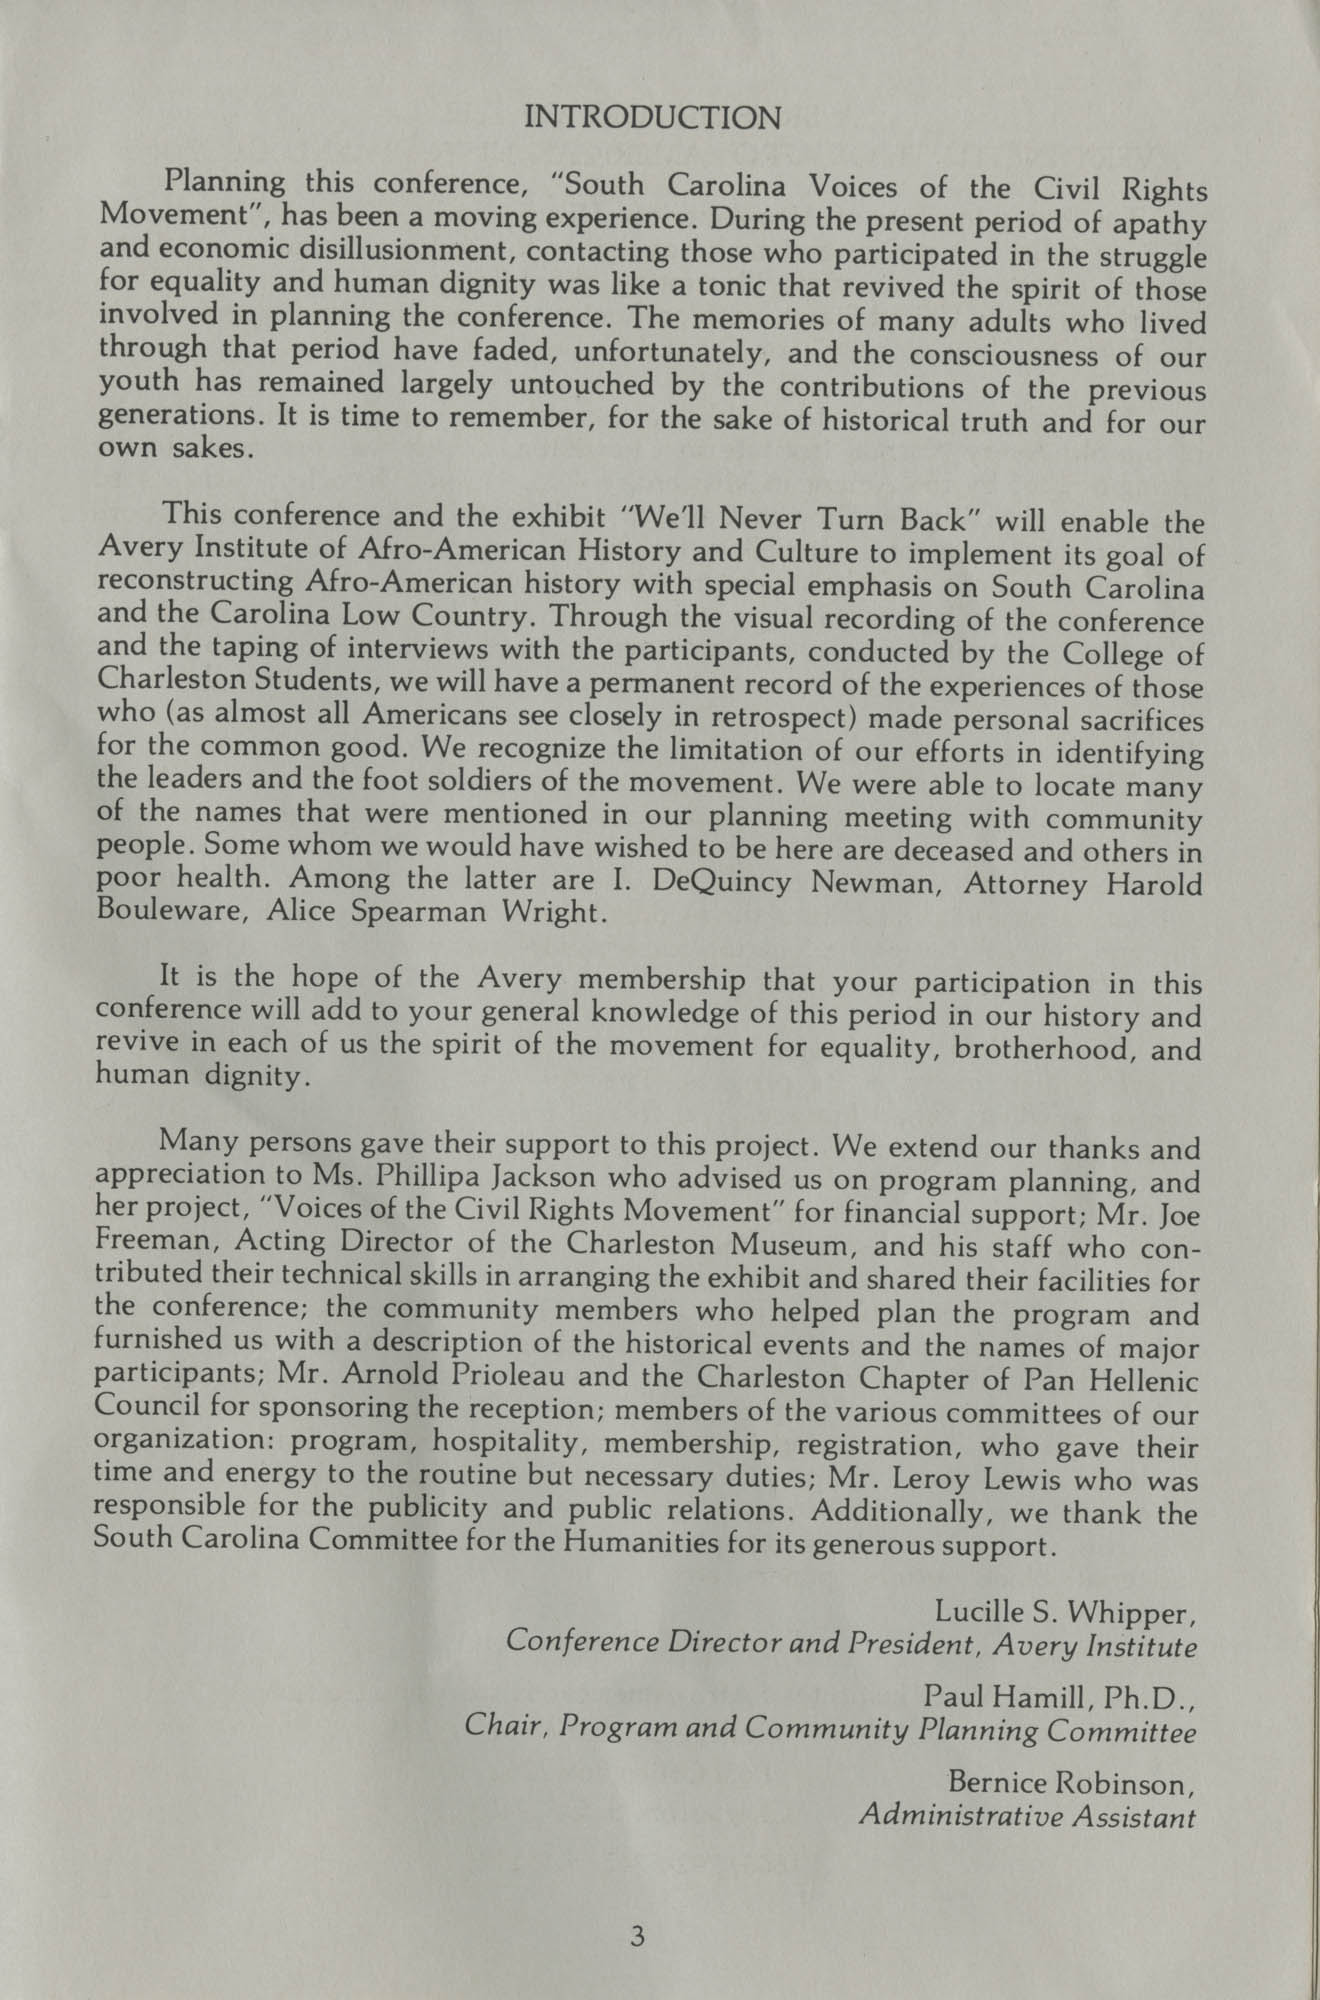 South Carolina Voices of the Civil Rights Movement, Page 3